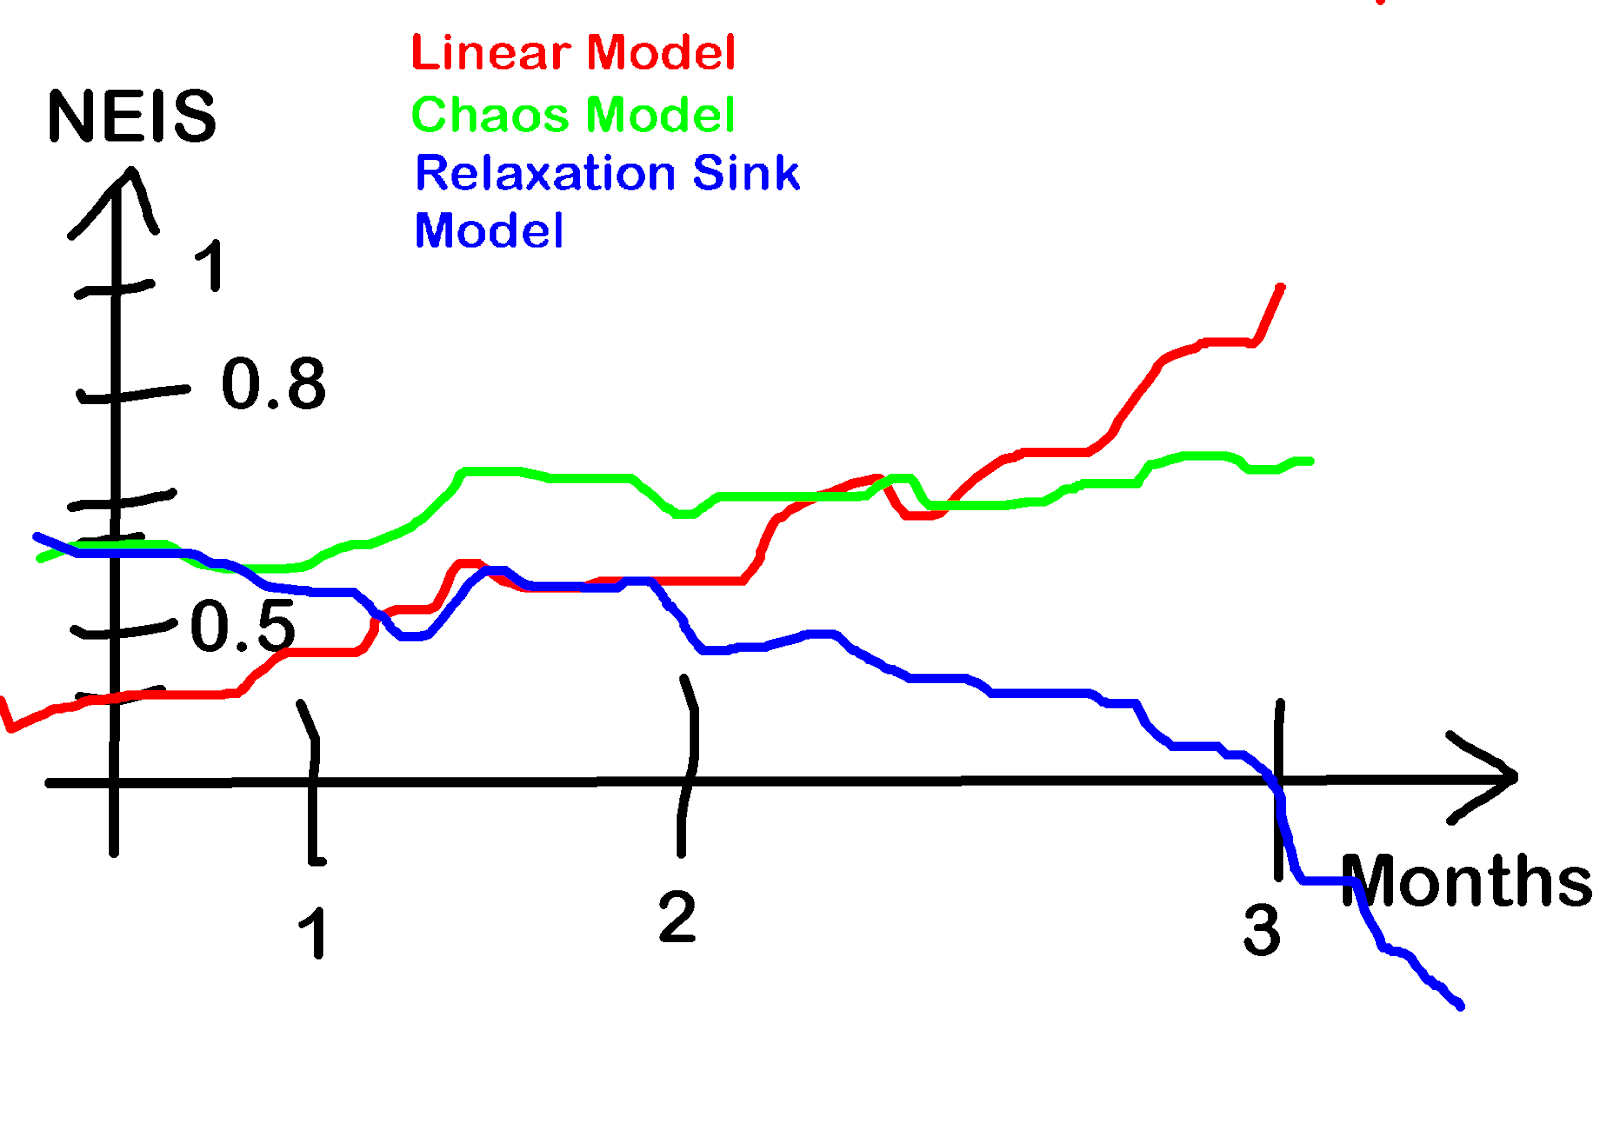 Markov Model Physical Exhaustion Inverse in Normalized Estimated Inverted Sabbath Unit (NEIS)